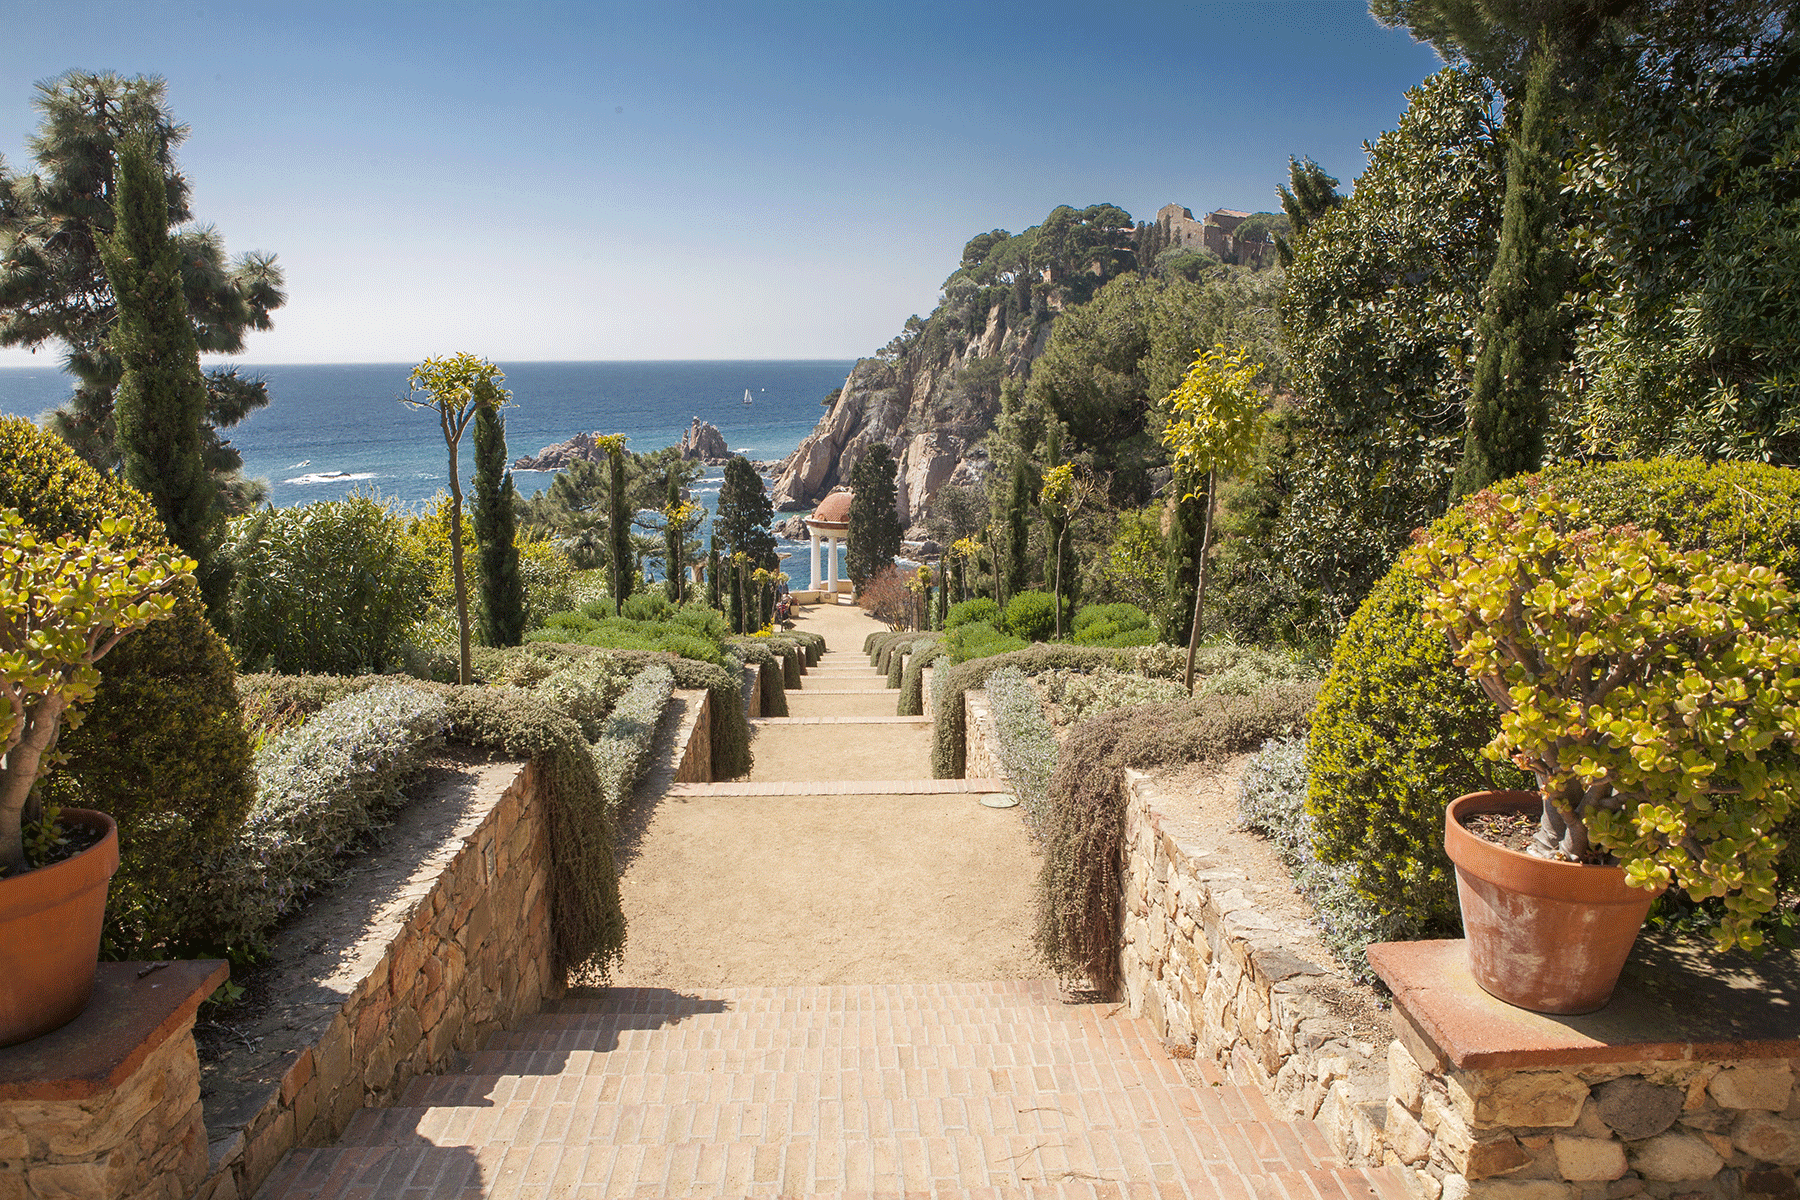 Gardens outside Barcelona, Marimurtra, Costa Brava